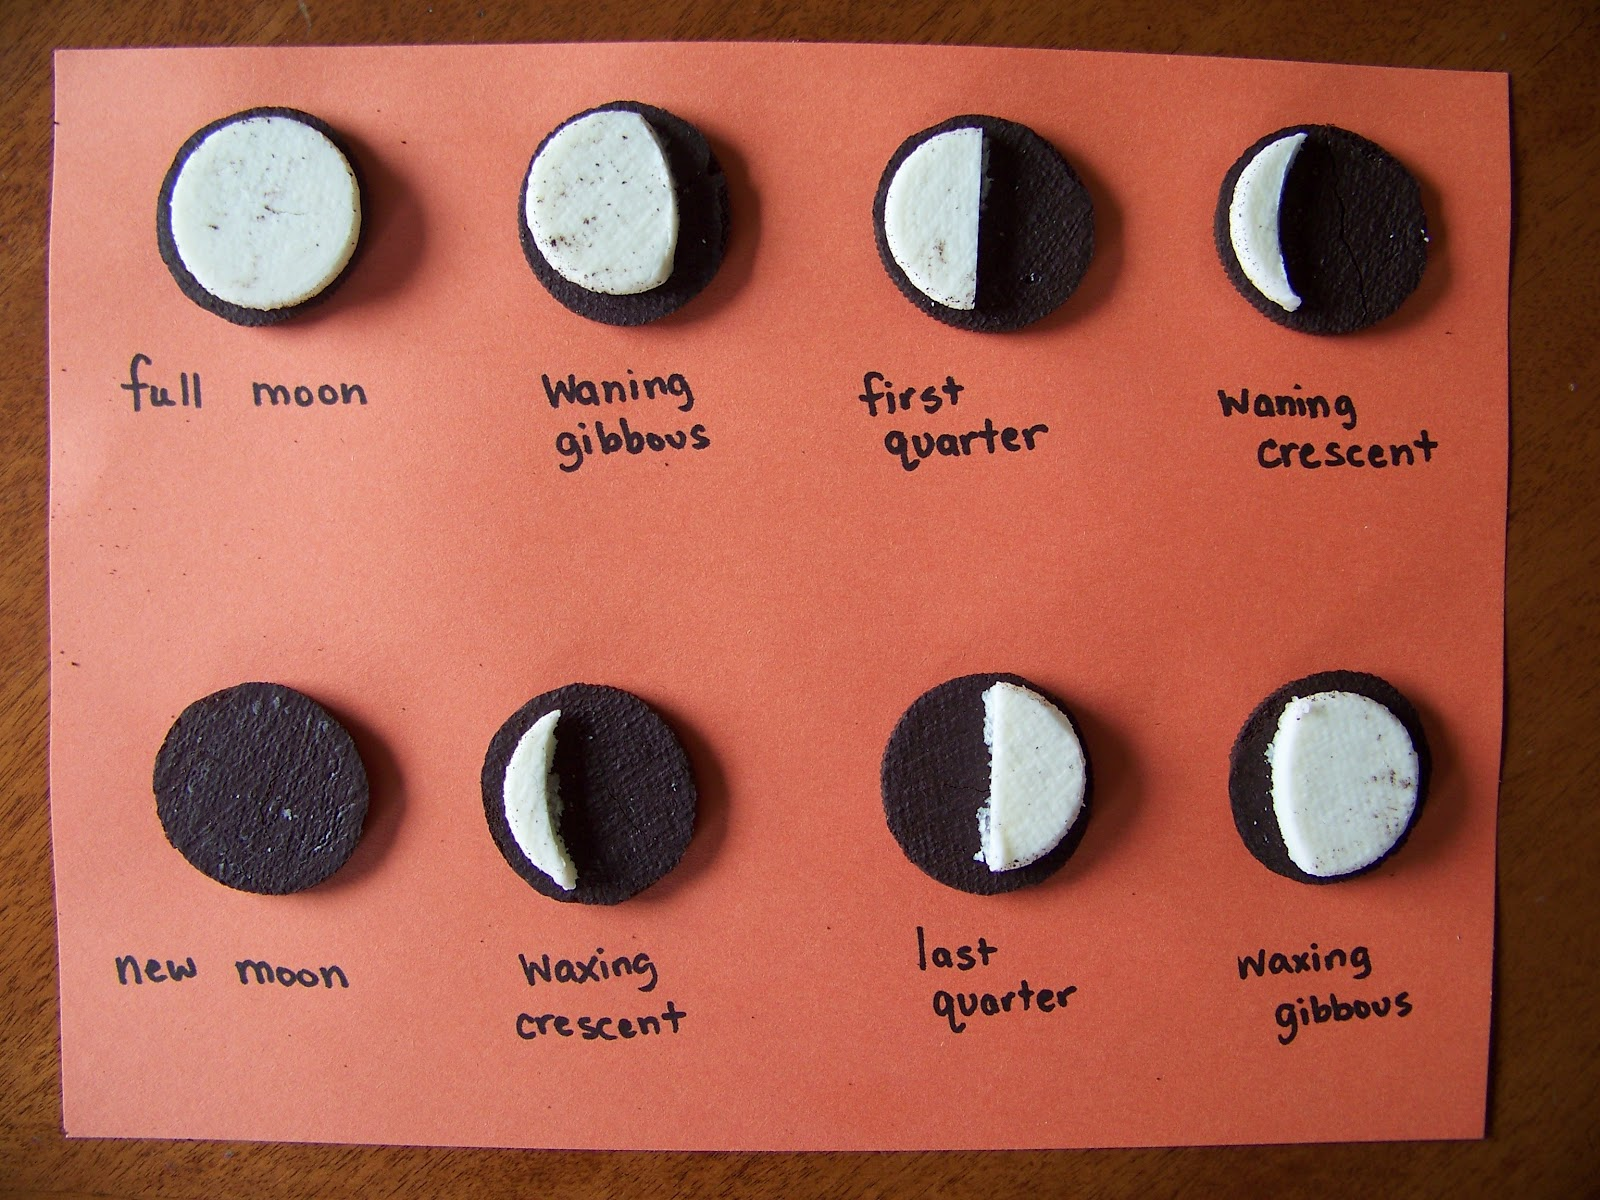 My Four Girls Phases Of The Moon Oreos